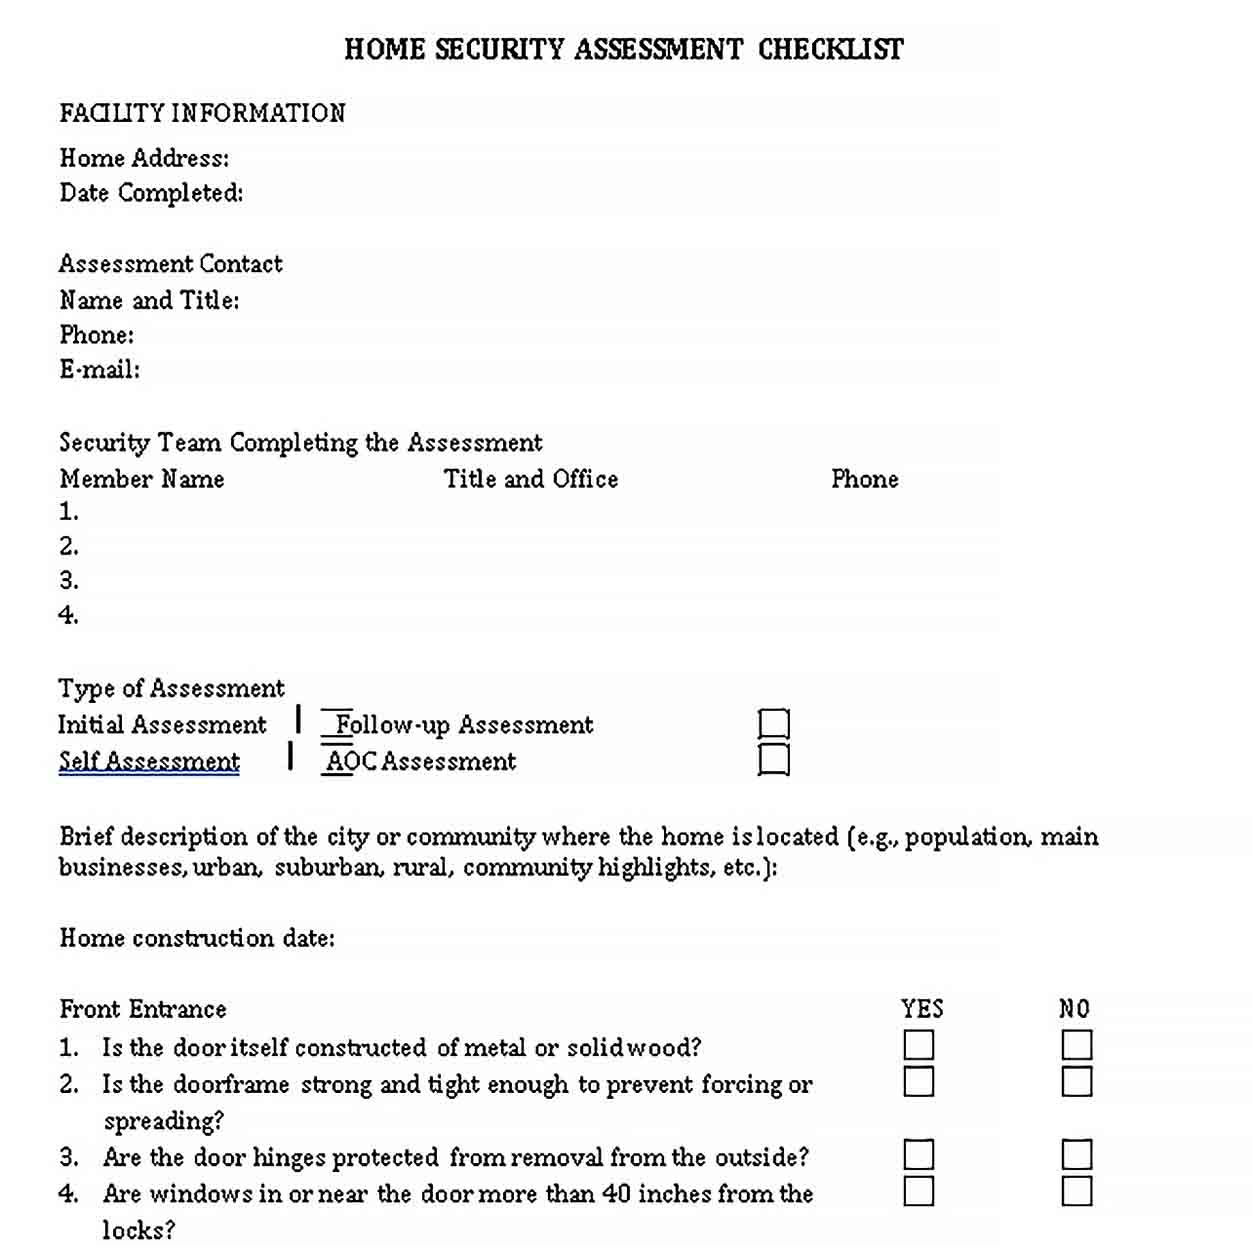 Template Home Security Assessment Checklist